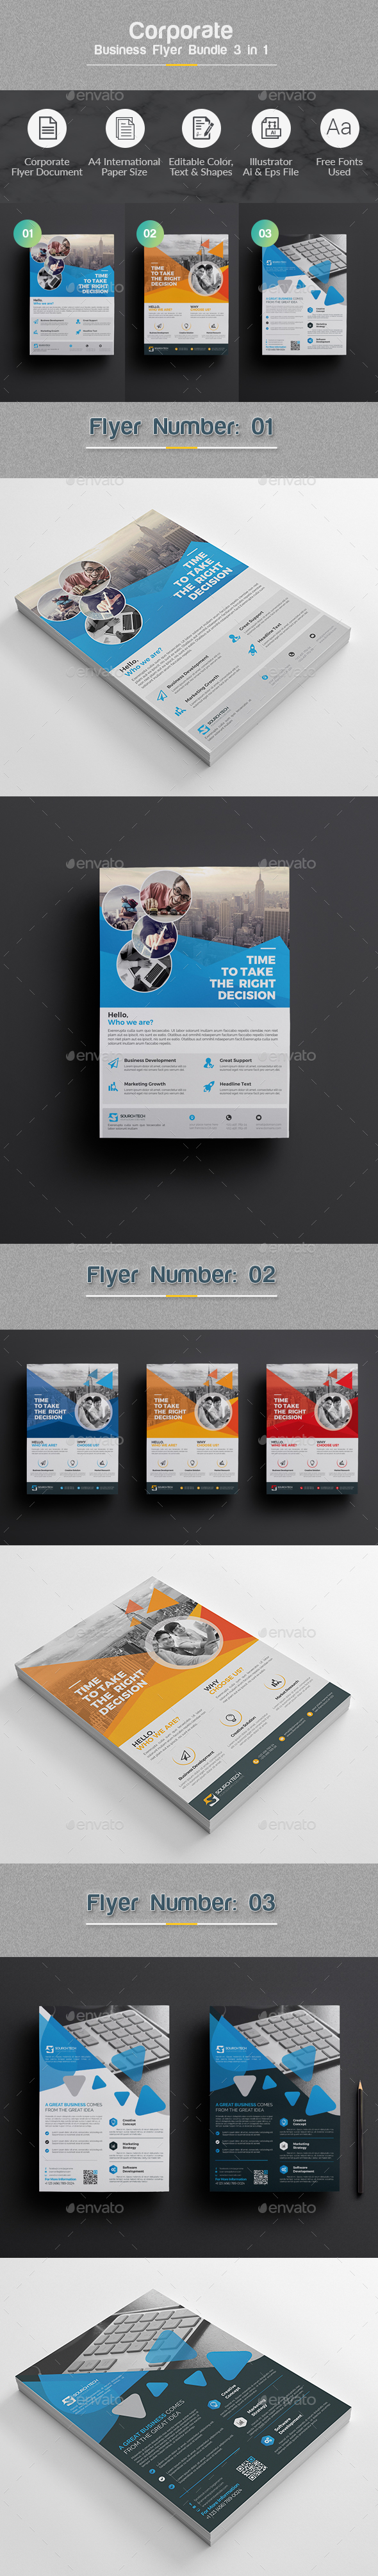 Flyer Template Bundle 3 in 1 - Corporate Flyers